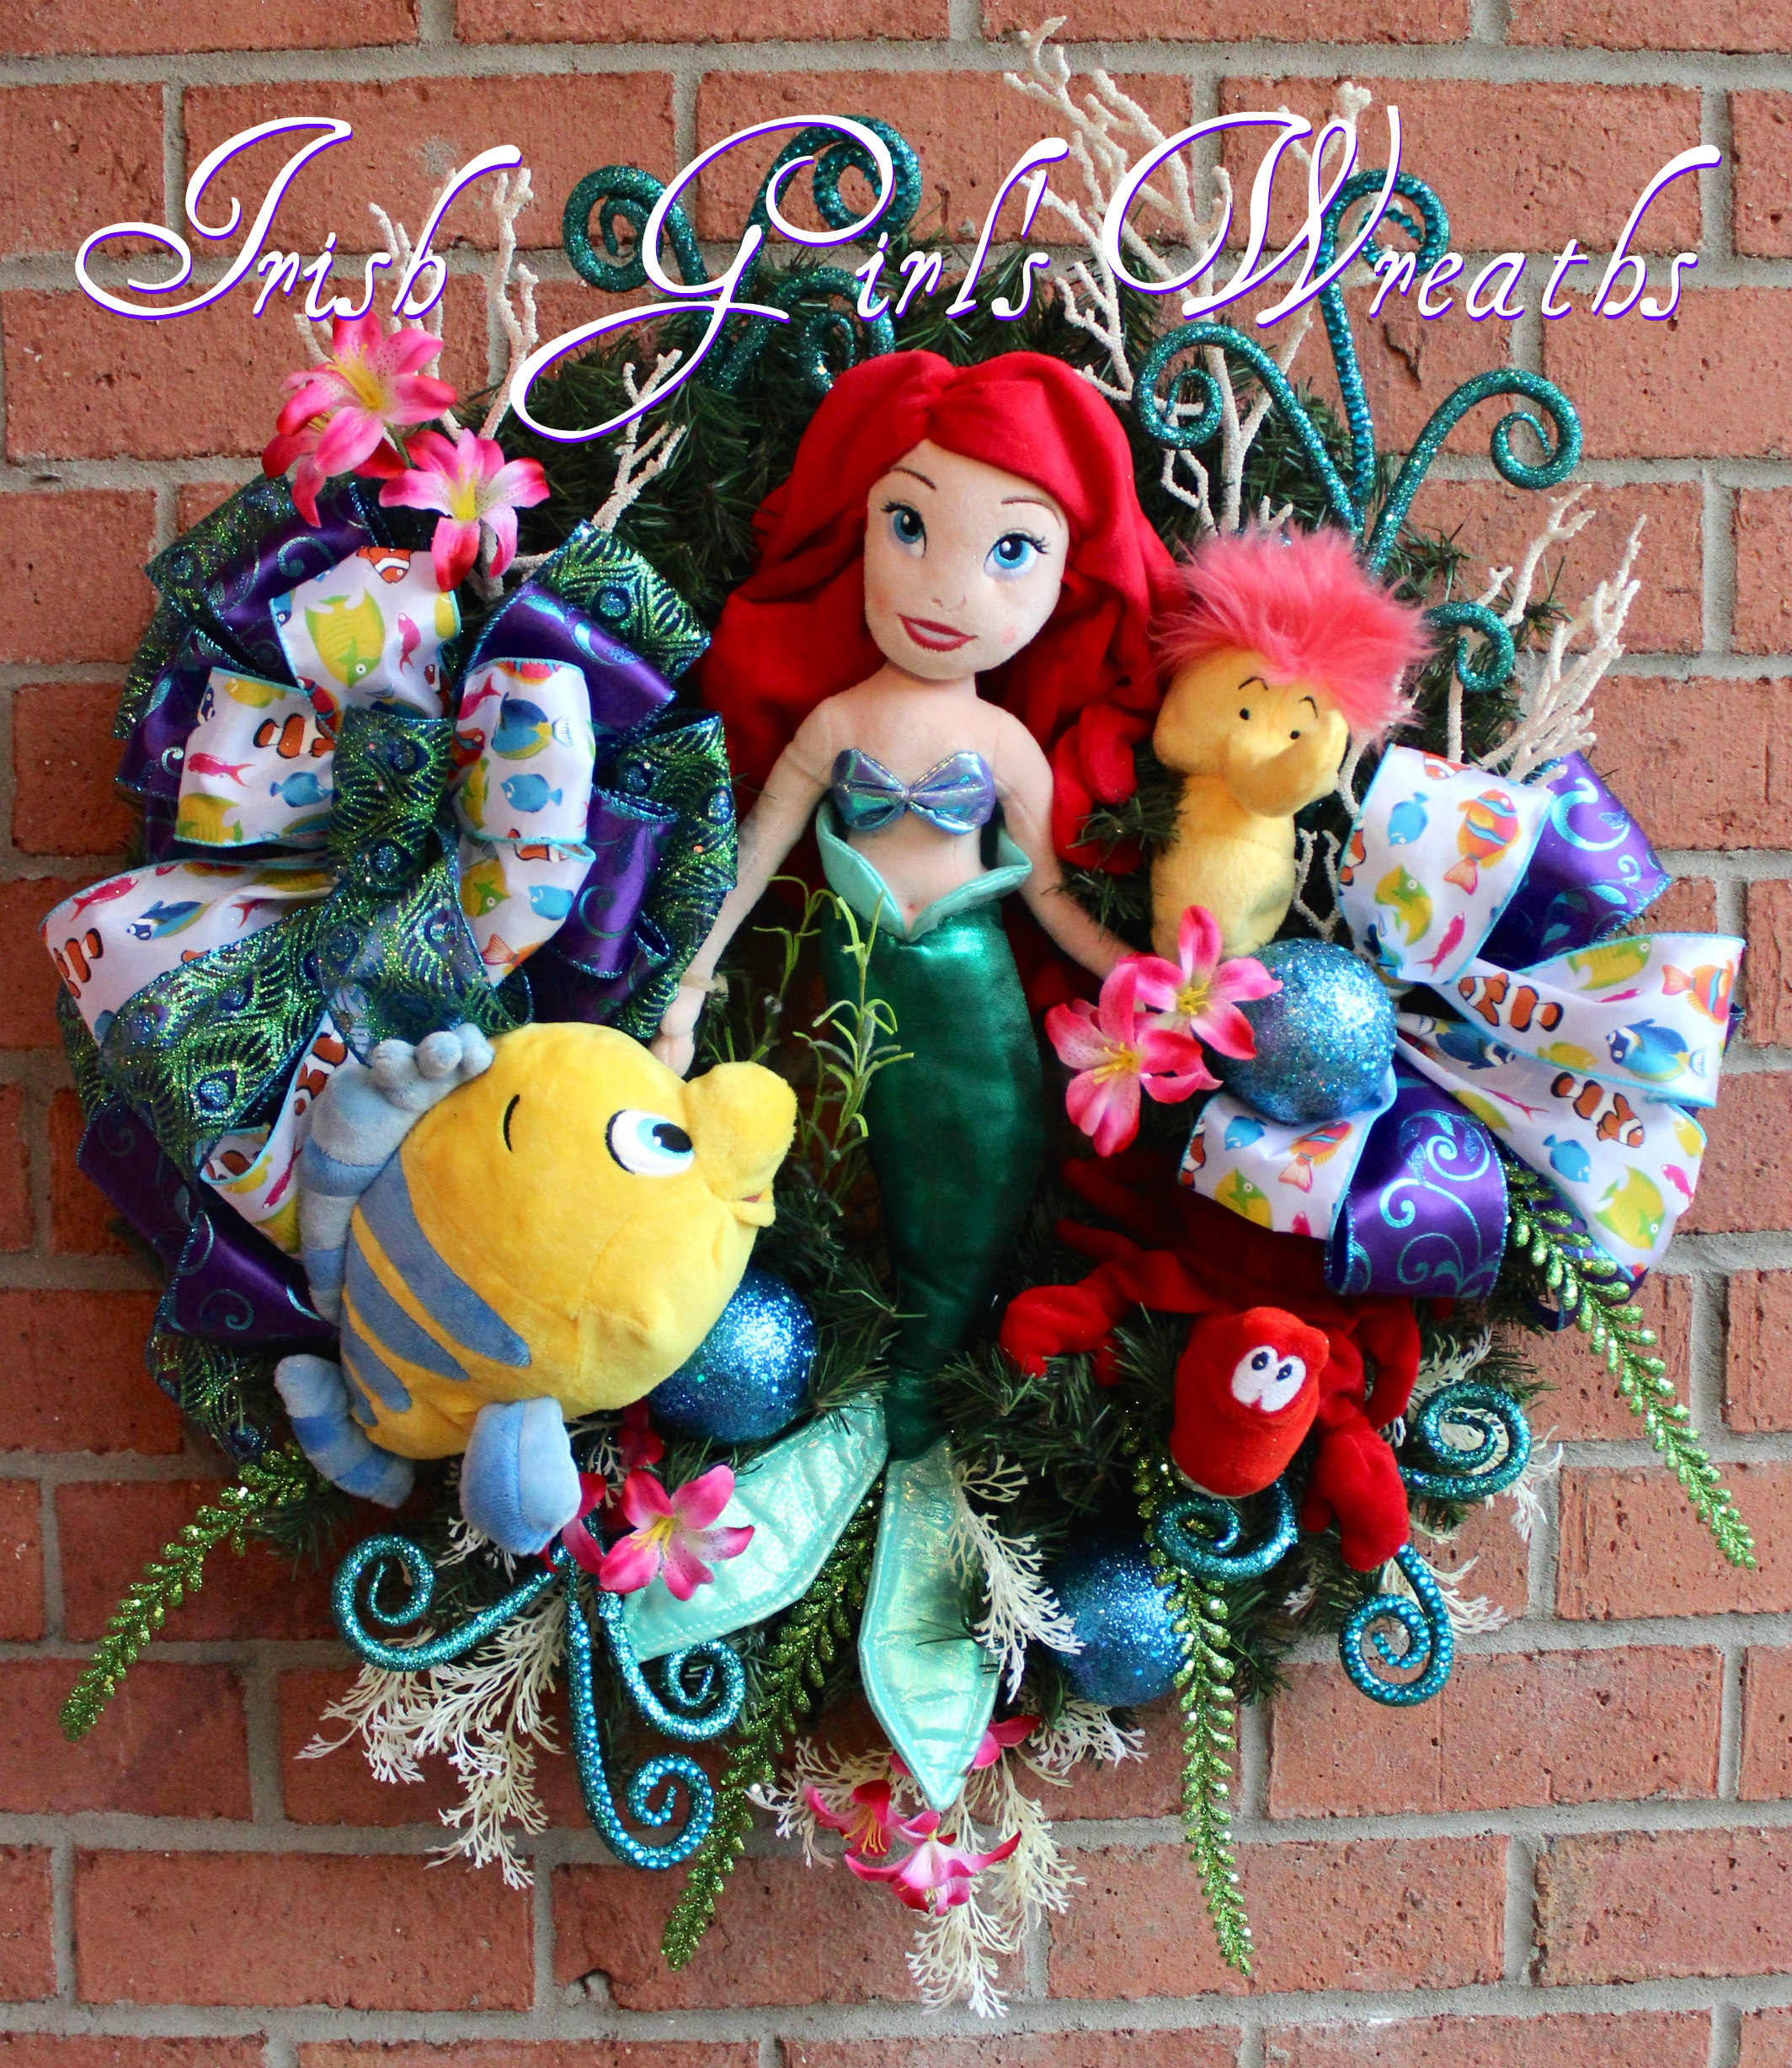 Princess Ariel Little Mermaid Wreath, Flounder, Sebastian Crab, Seahorse, Disney Princess Wreath